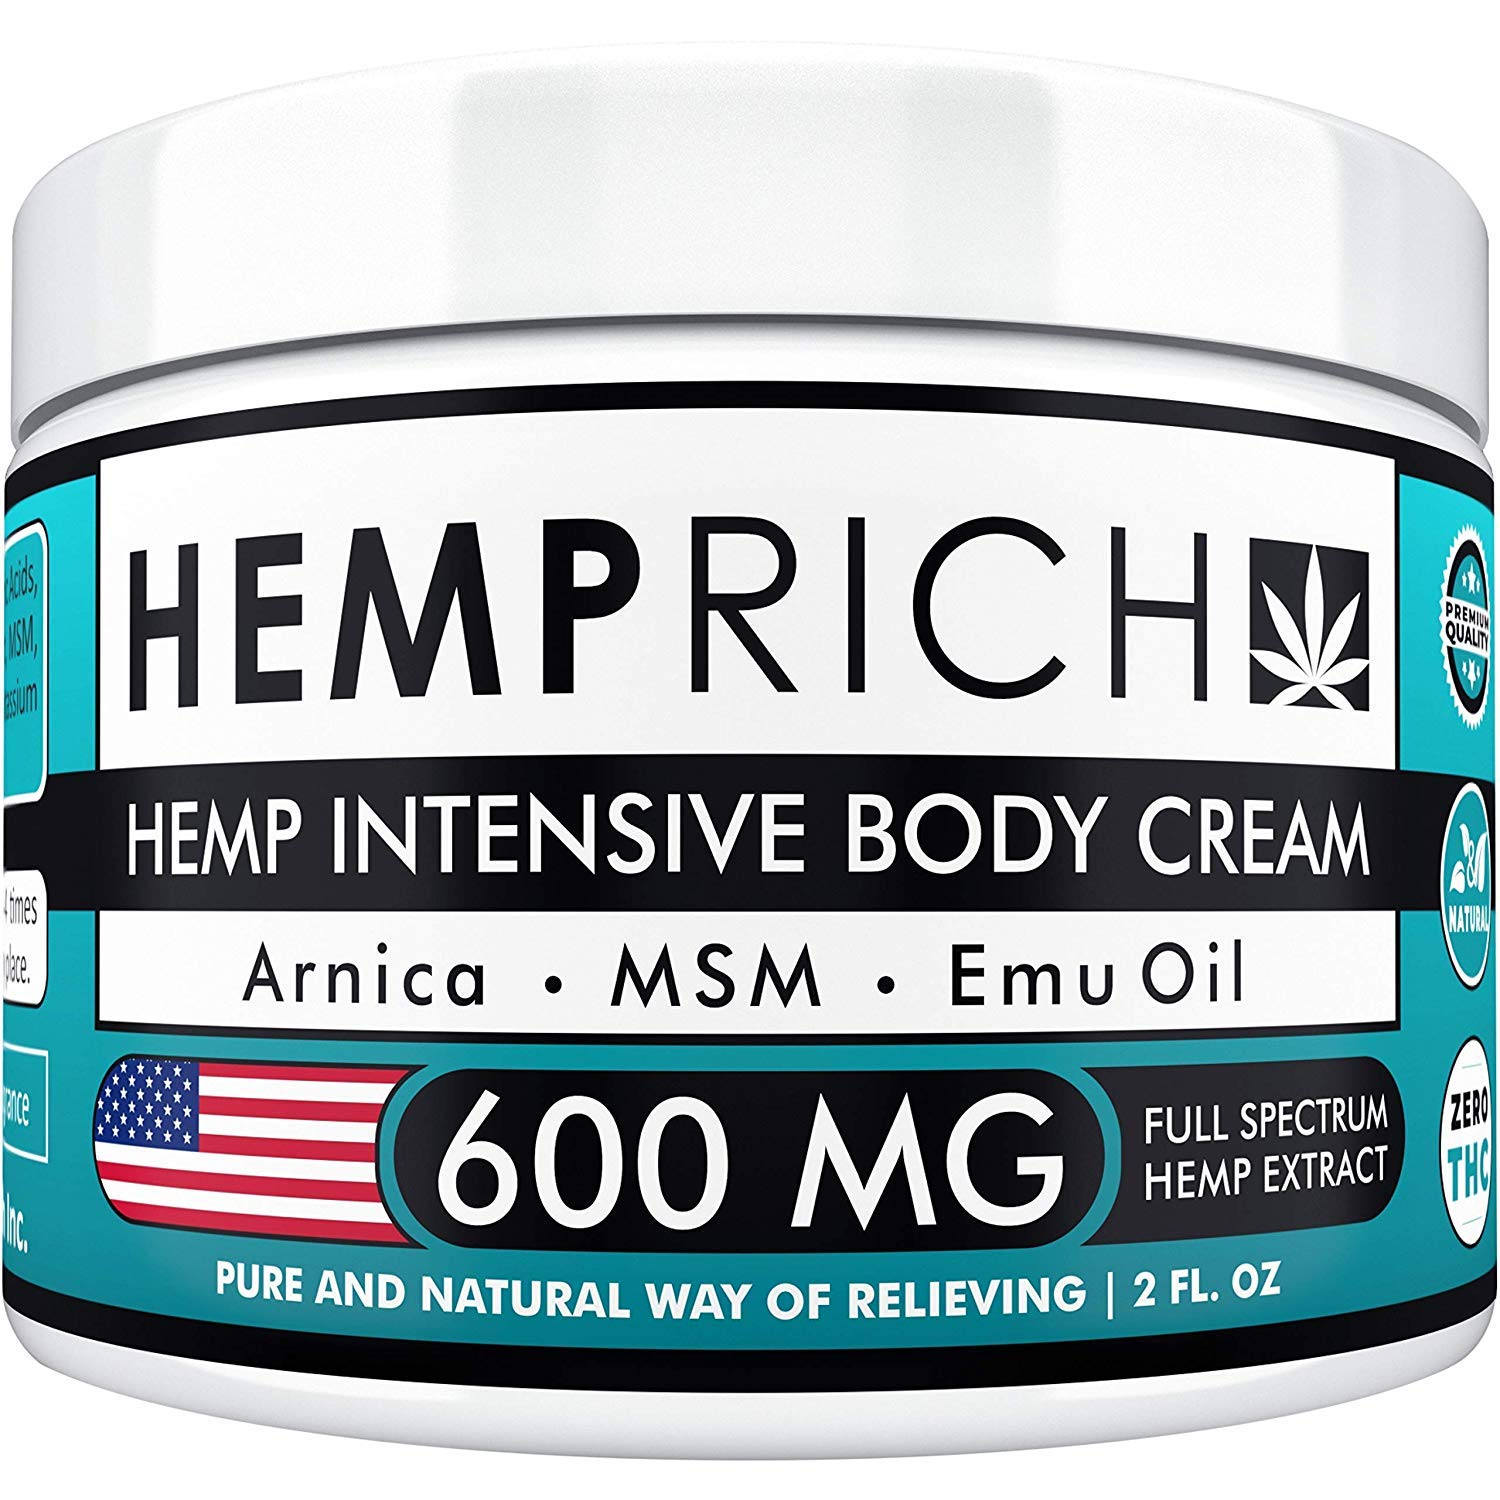 Hemp Cream for Pain Relief - 600 Mg - Contains Arnica, MSM & EMU Oil - Fast Acting Natural Hemp Extract Cream for Inflammation, Muscle, Joint, Knee, Neck, Arthritis & Back Pain - Made in USA - Non-GMO